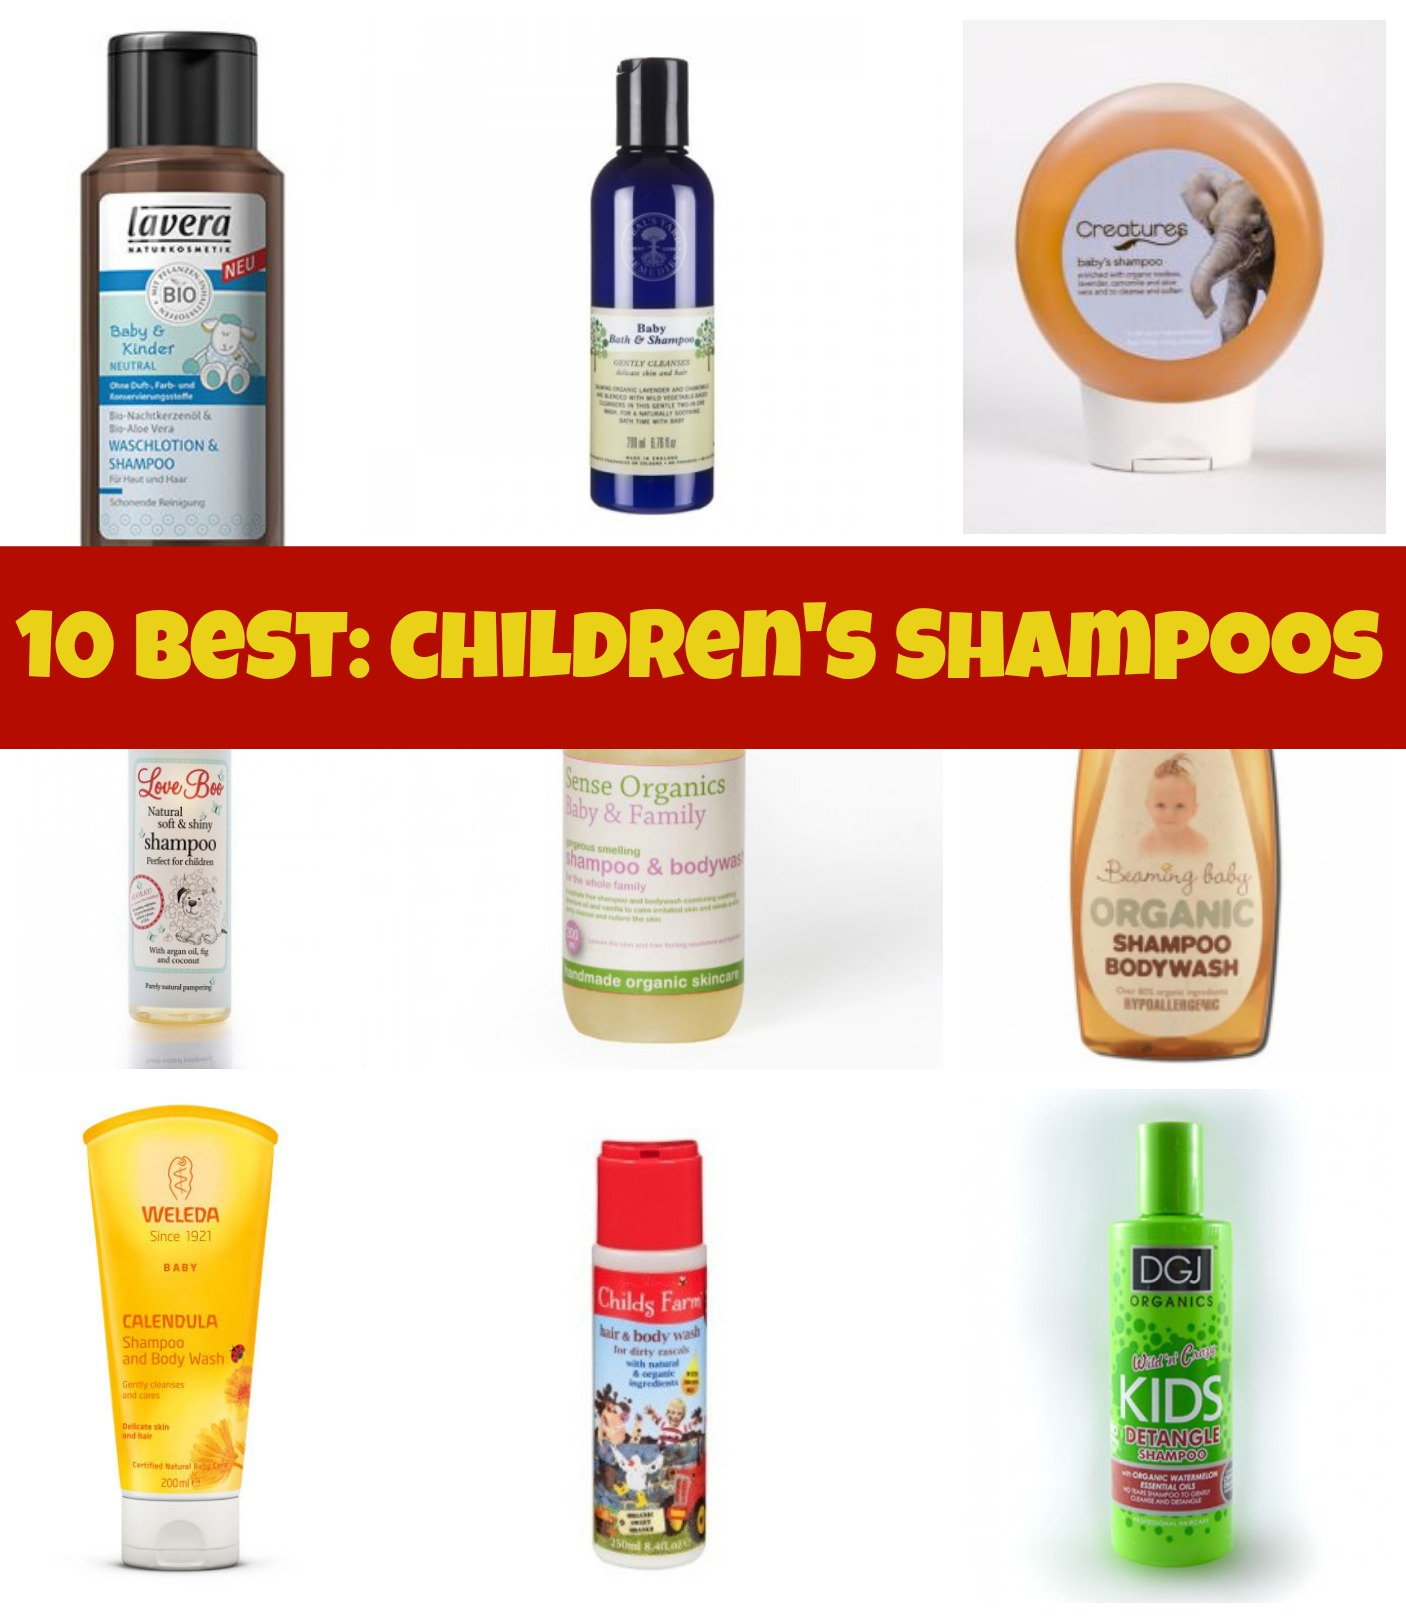 10 best: children's shampoos